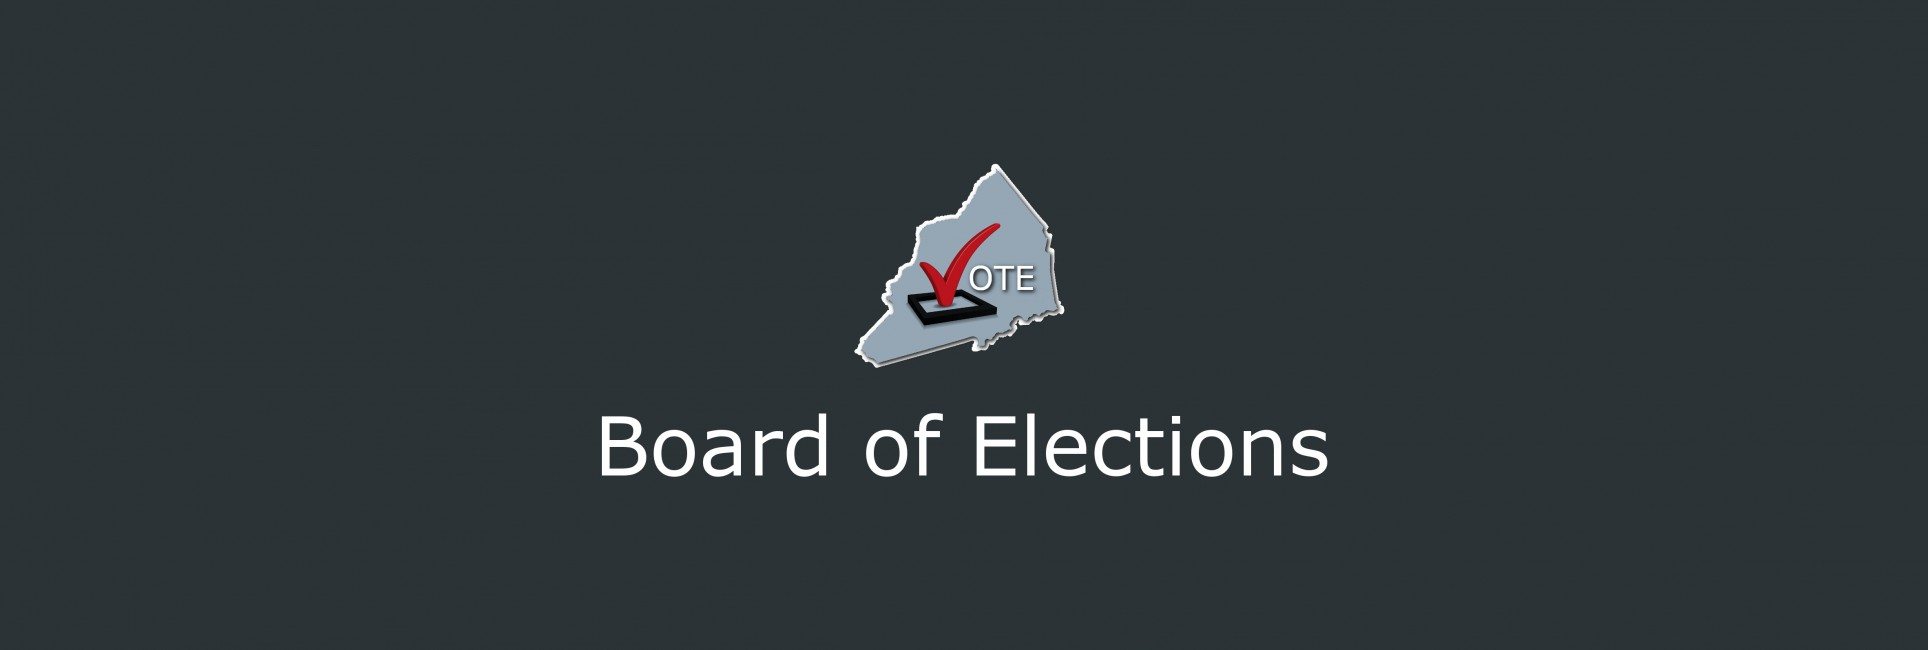 Board of Elections